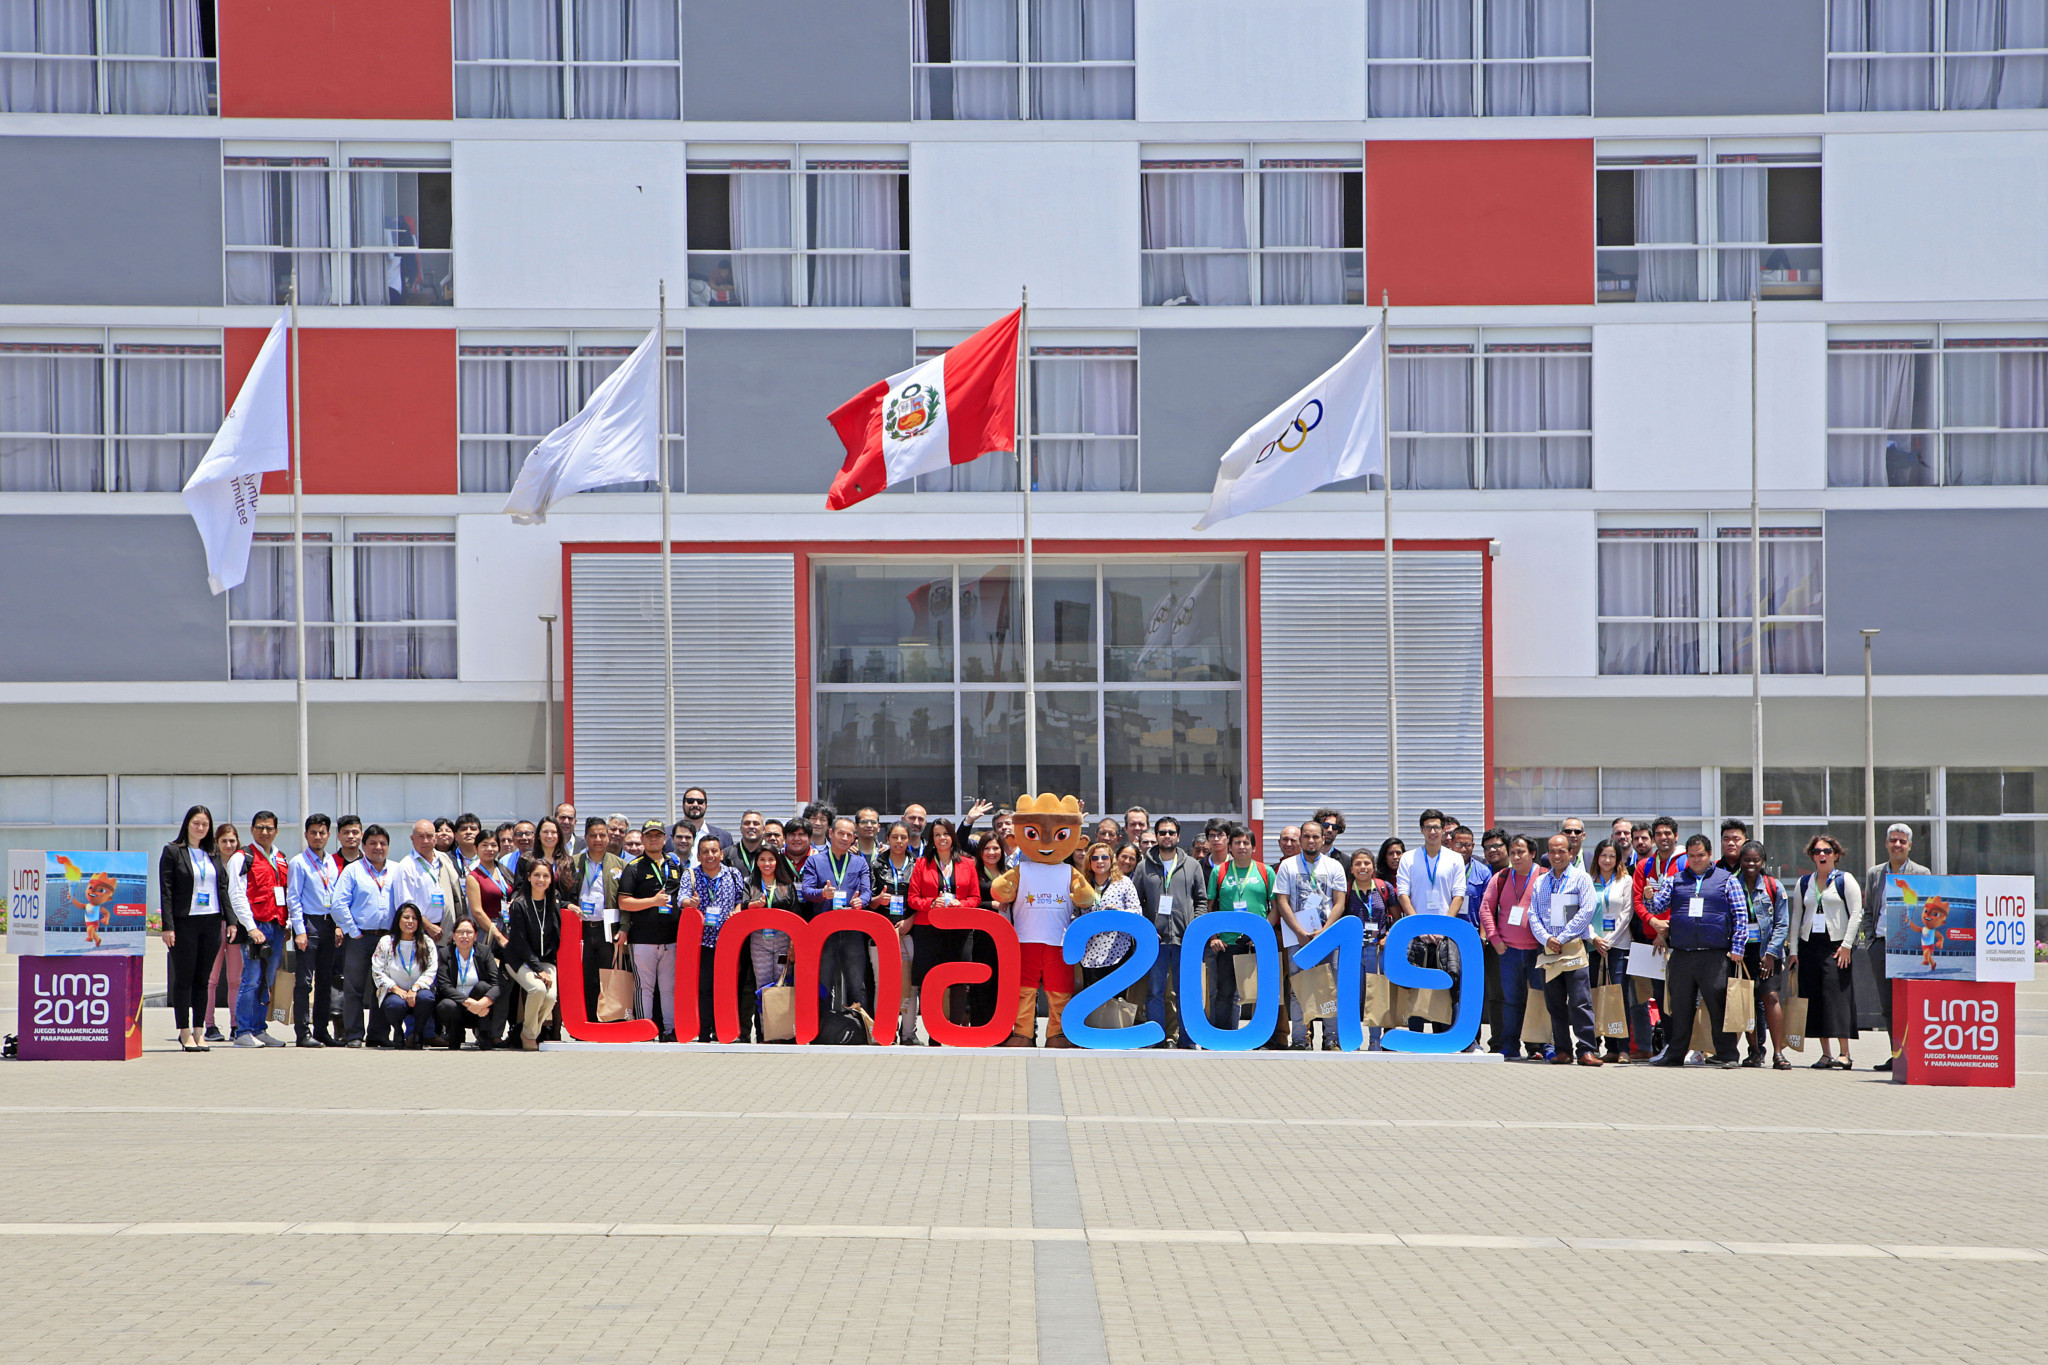 Lima 2019 announce free internet access for media at Pan American Games